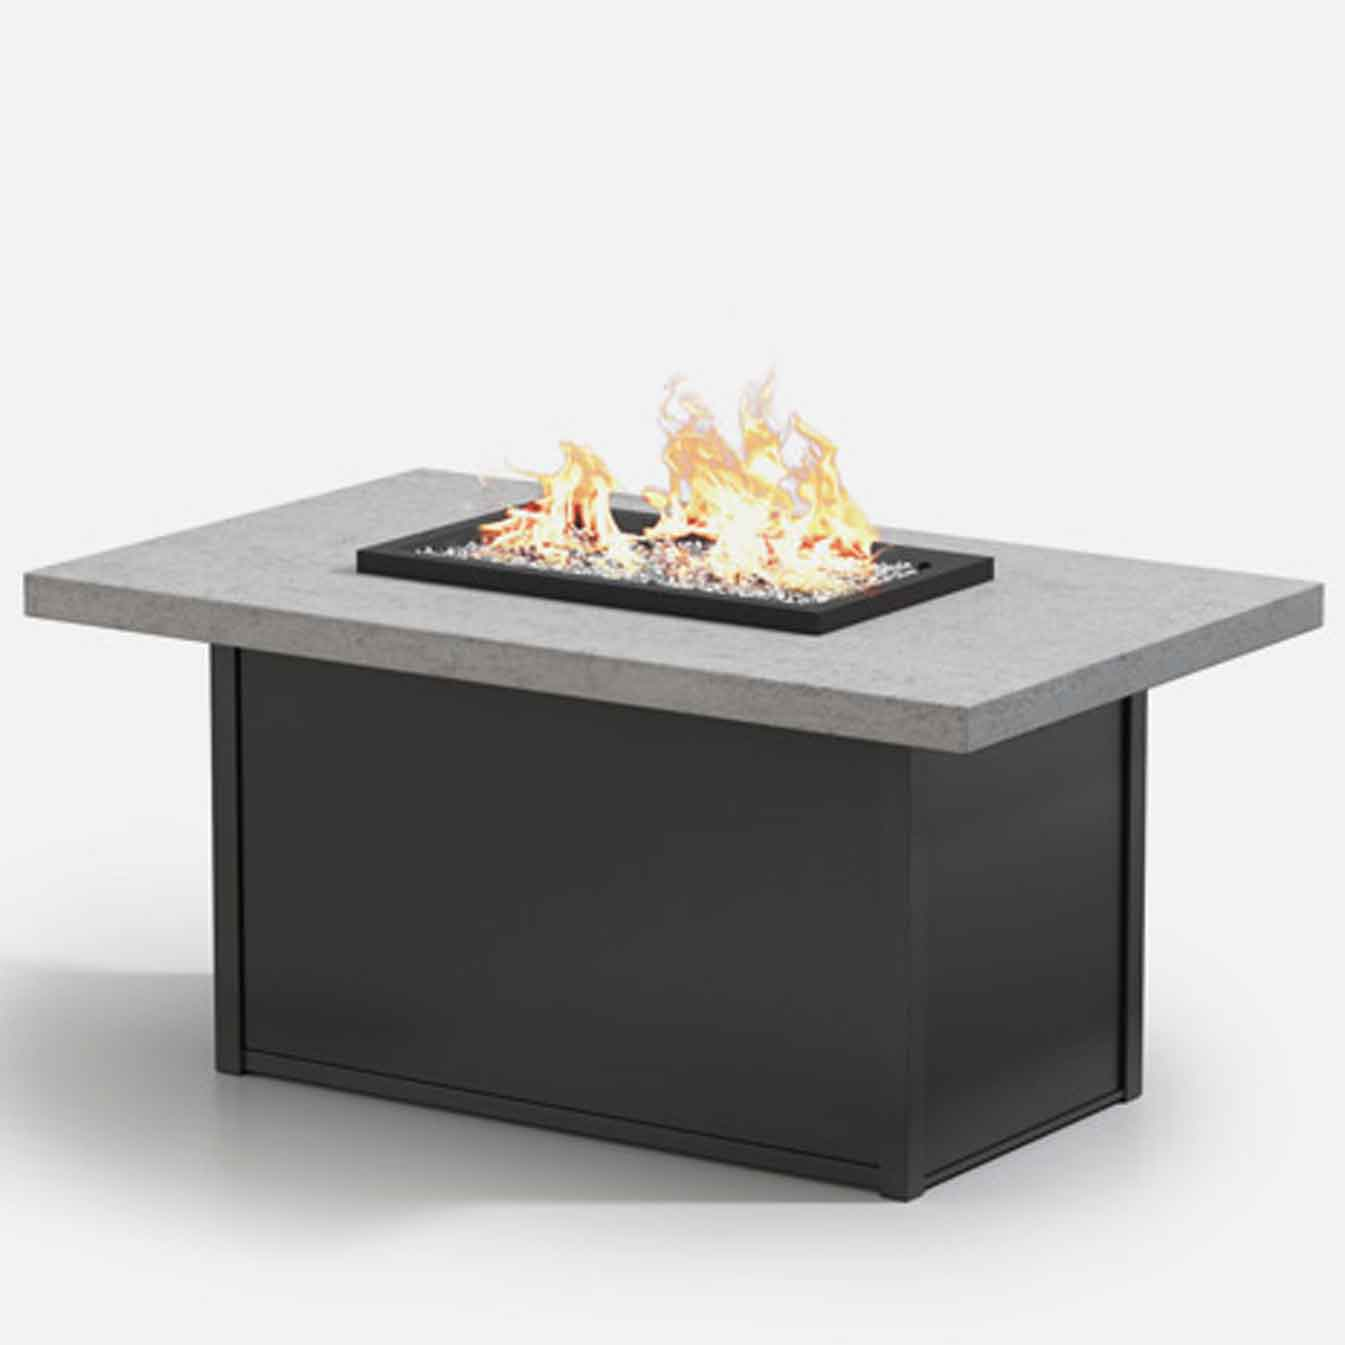 Aurora Rectangle Chat Fire Pit